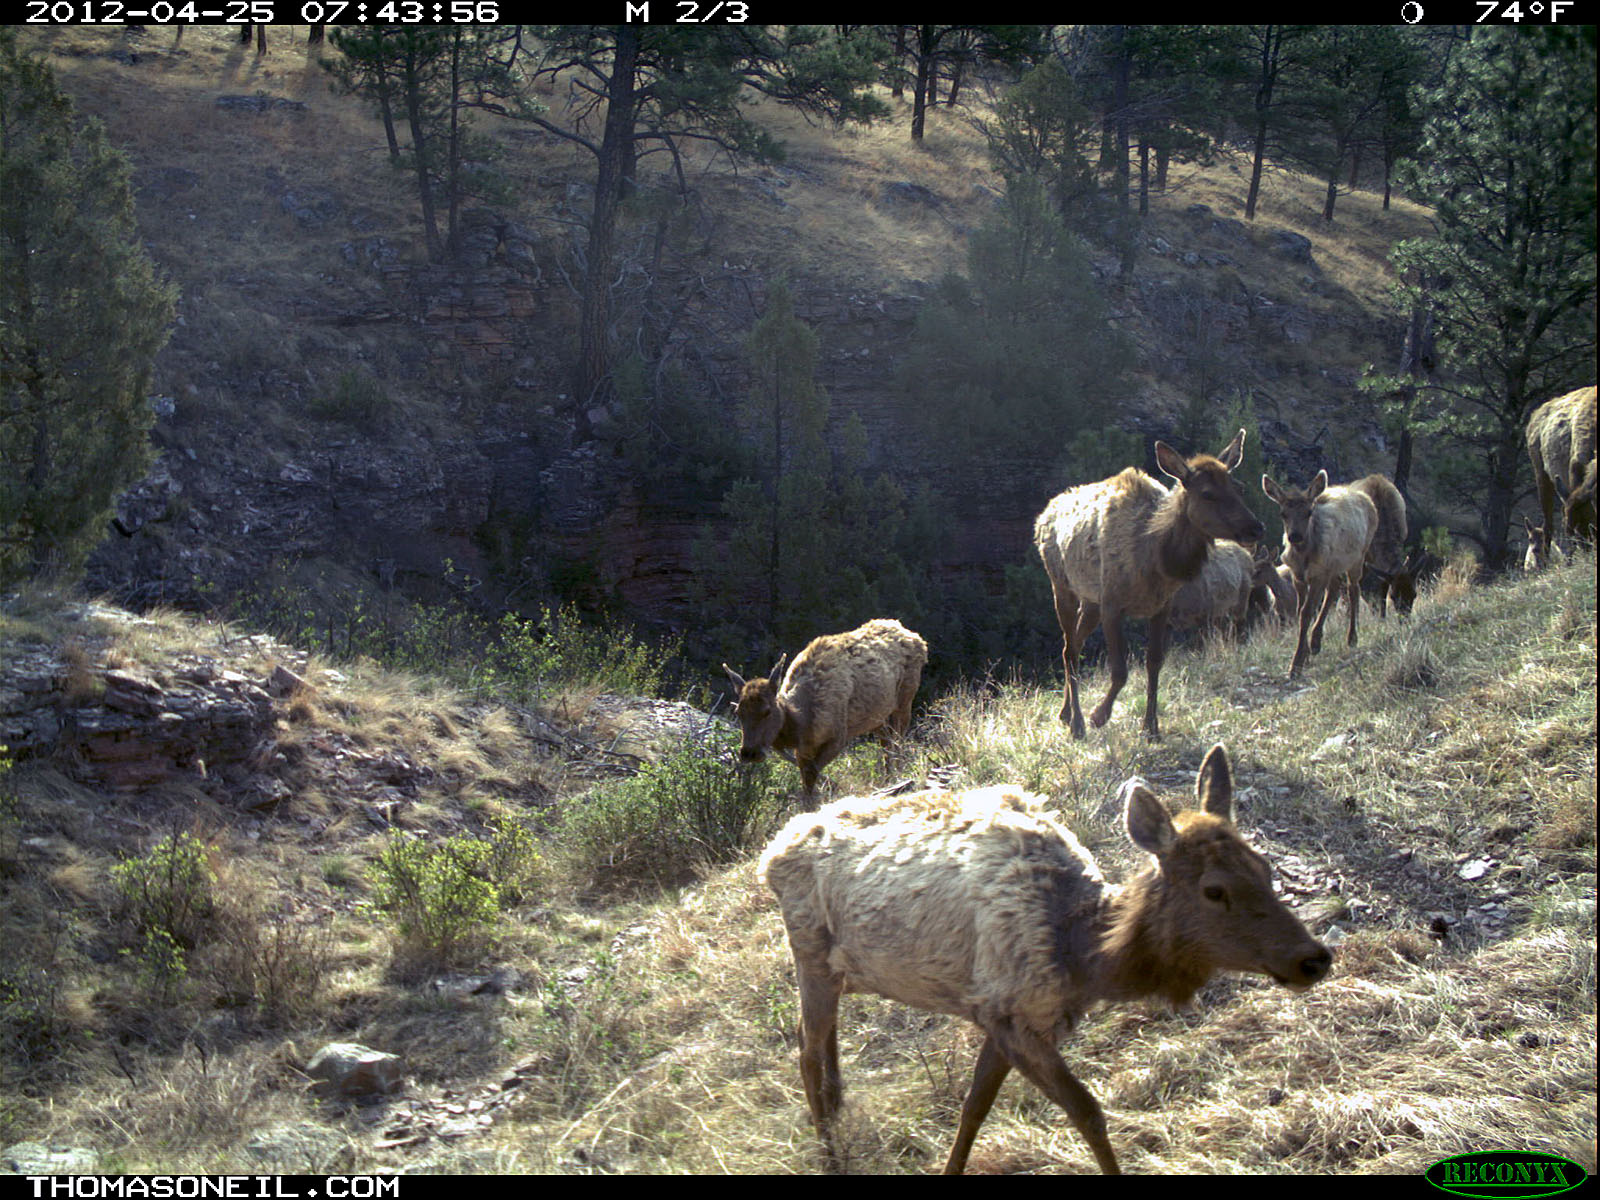 Trailcam picture of elk, Wind Cave National Park, April 25.  Click for next photo.